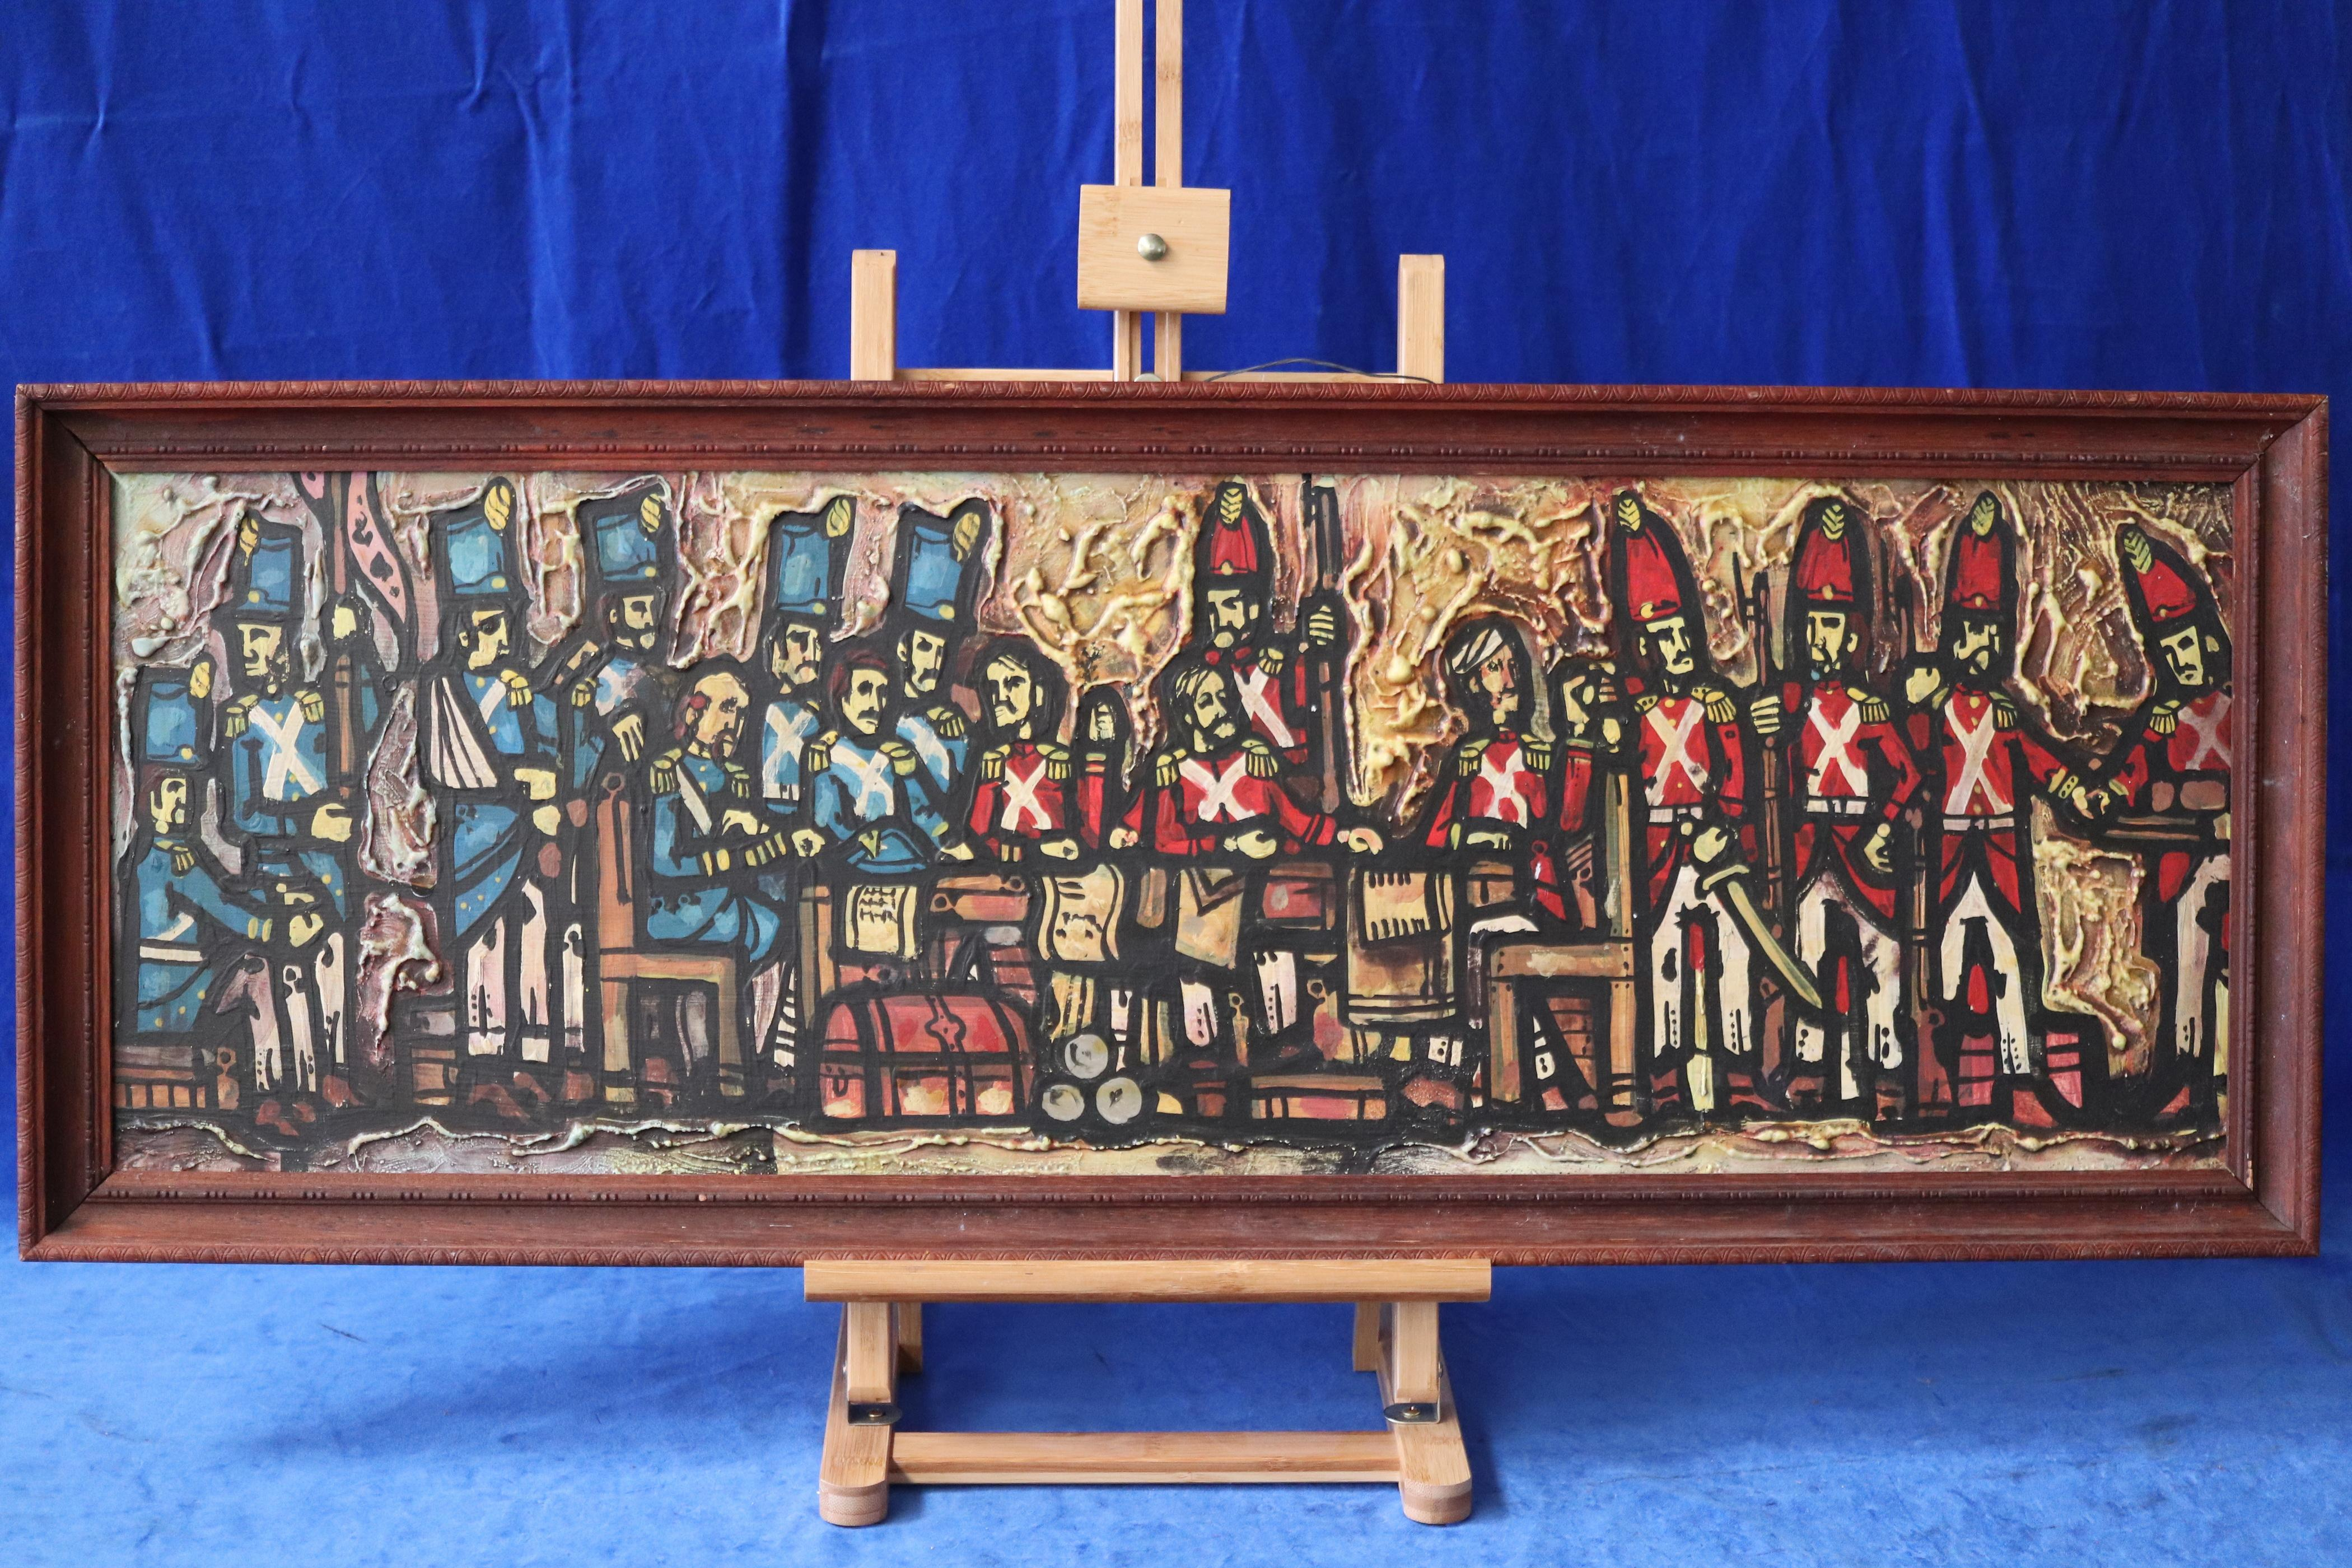 MICHAEL SALMON - CANBERRA 1973 SIGNED OIL PAINTING - TITLED SURRENDER OF THE BLUE ARMY TO THE RED ARMY